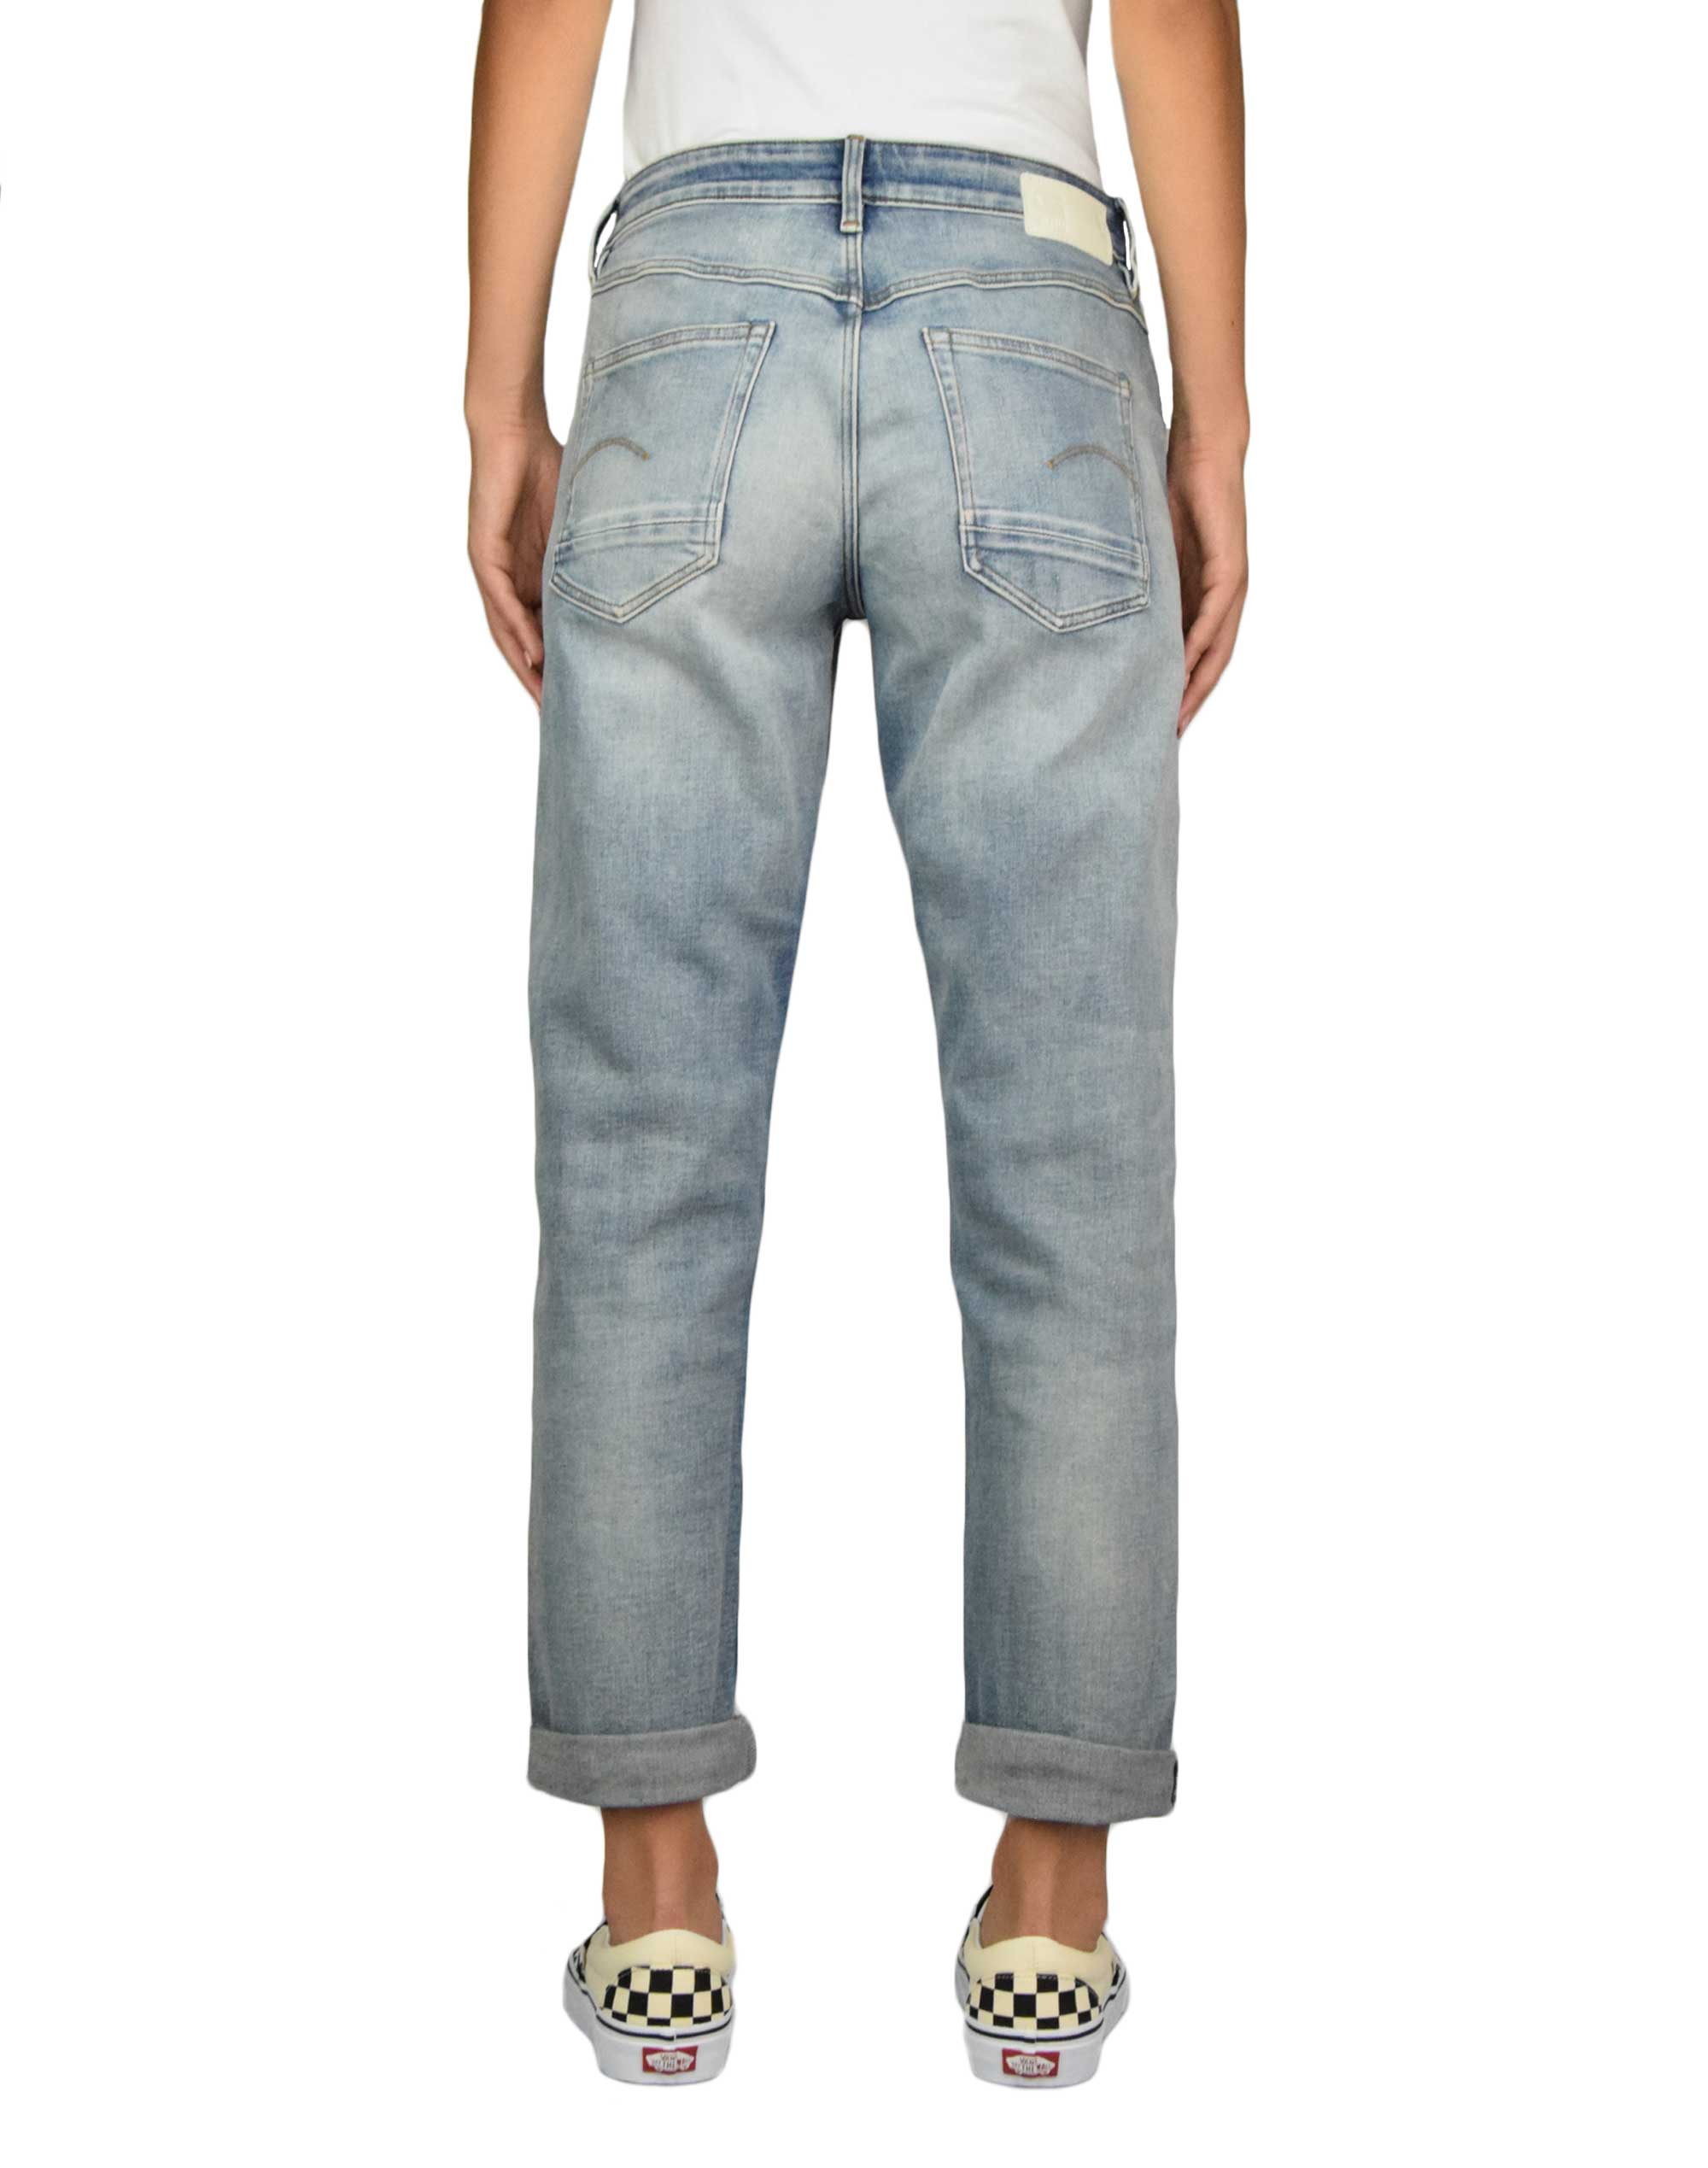 G-Star Raw Kate Boyfriend (D15264-C052-B819) Antic Faded Lapo Blue Destroyed